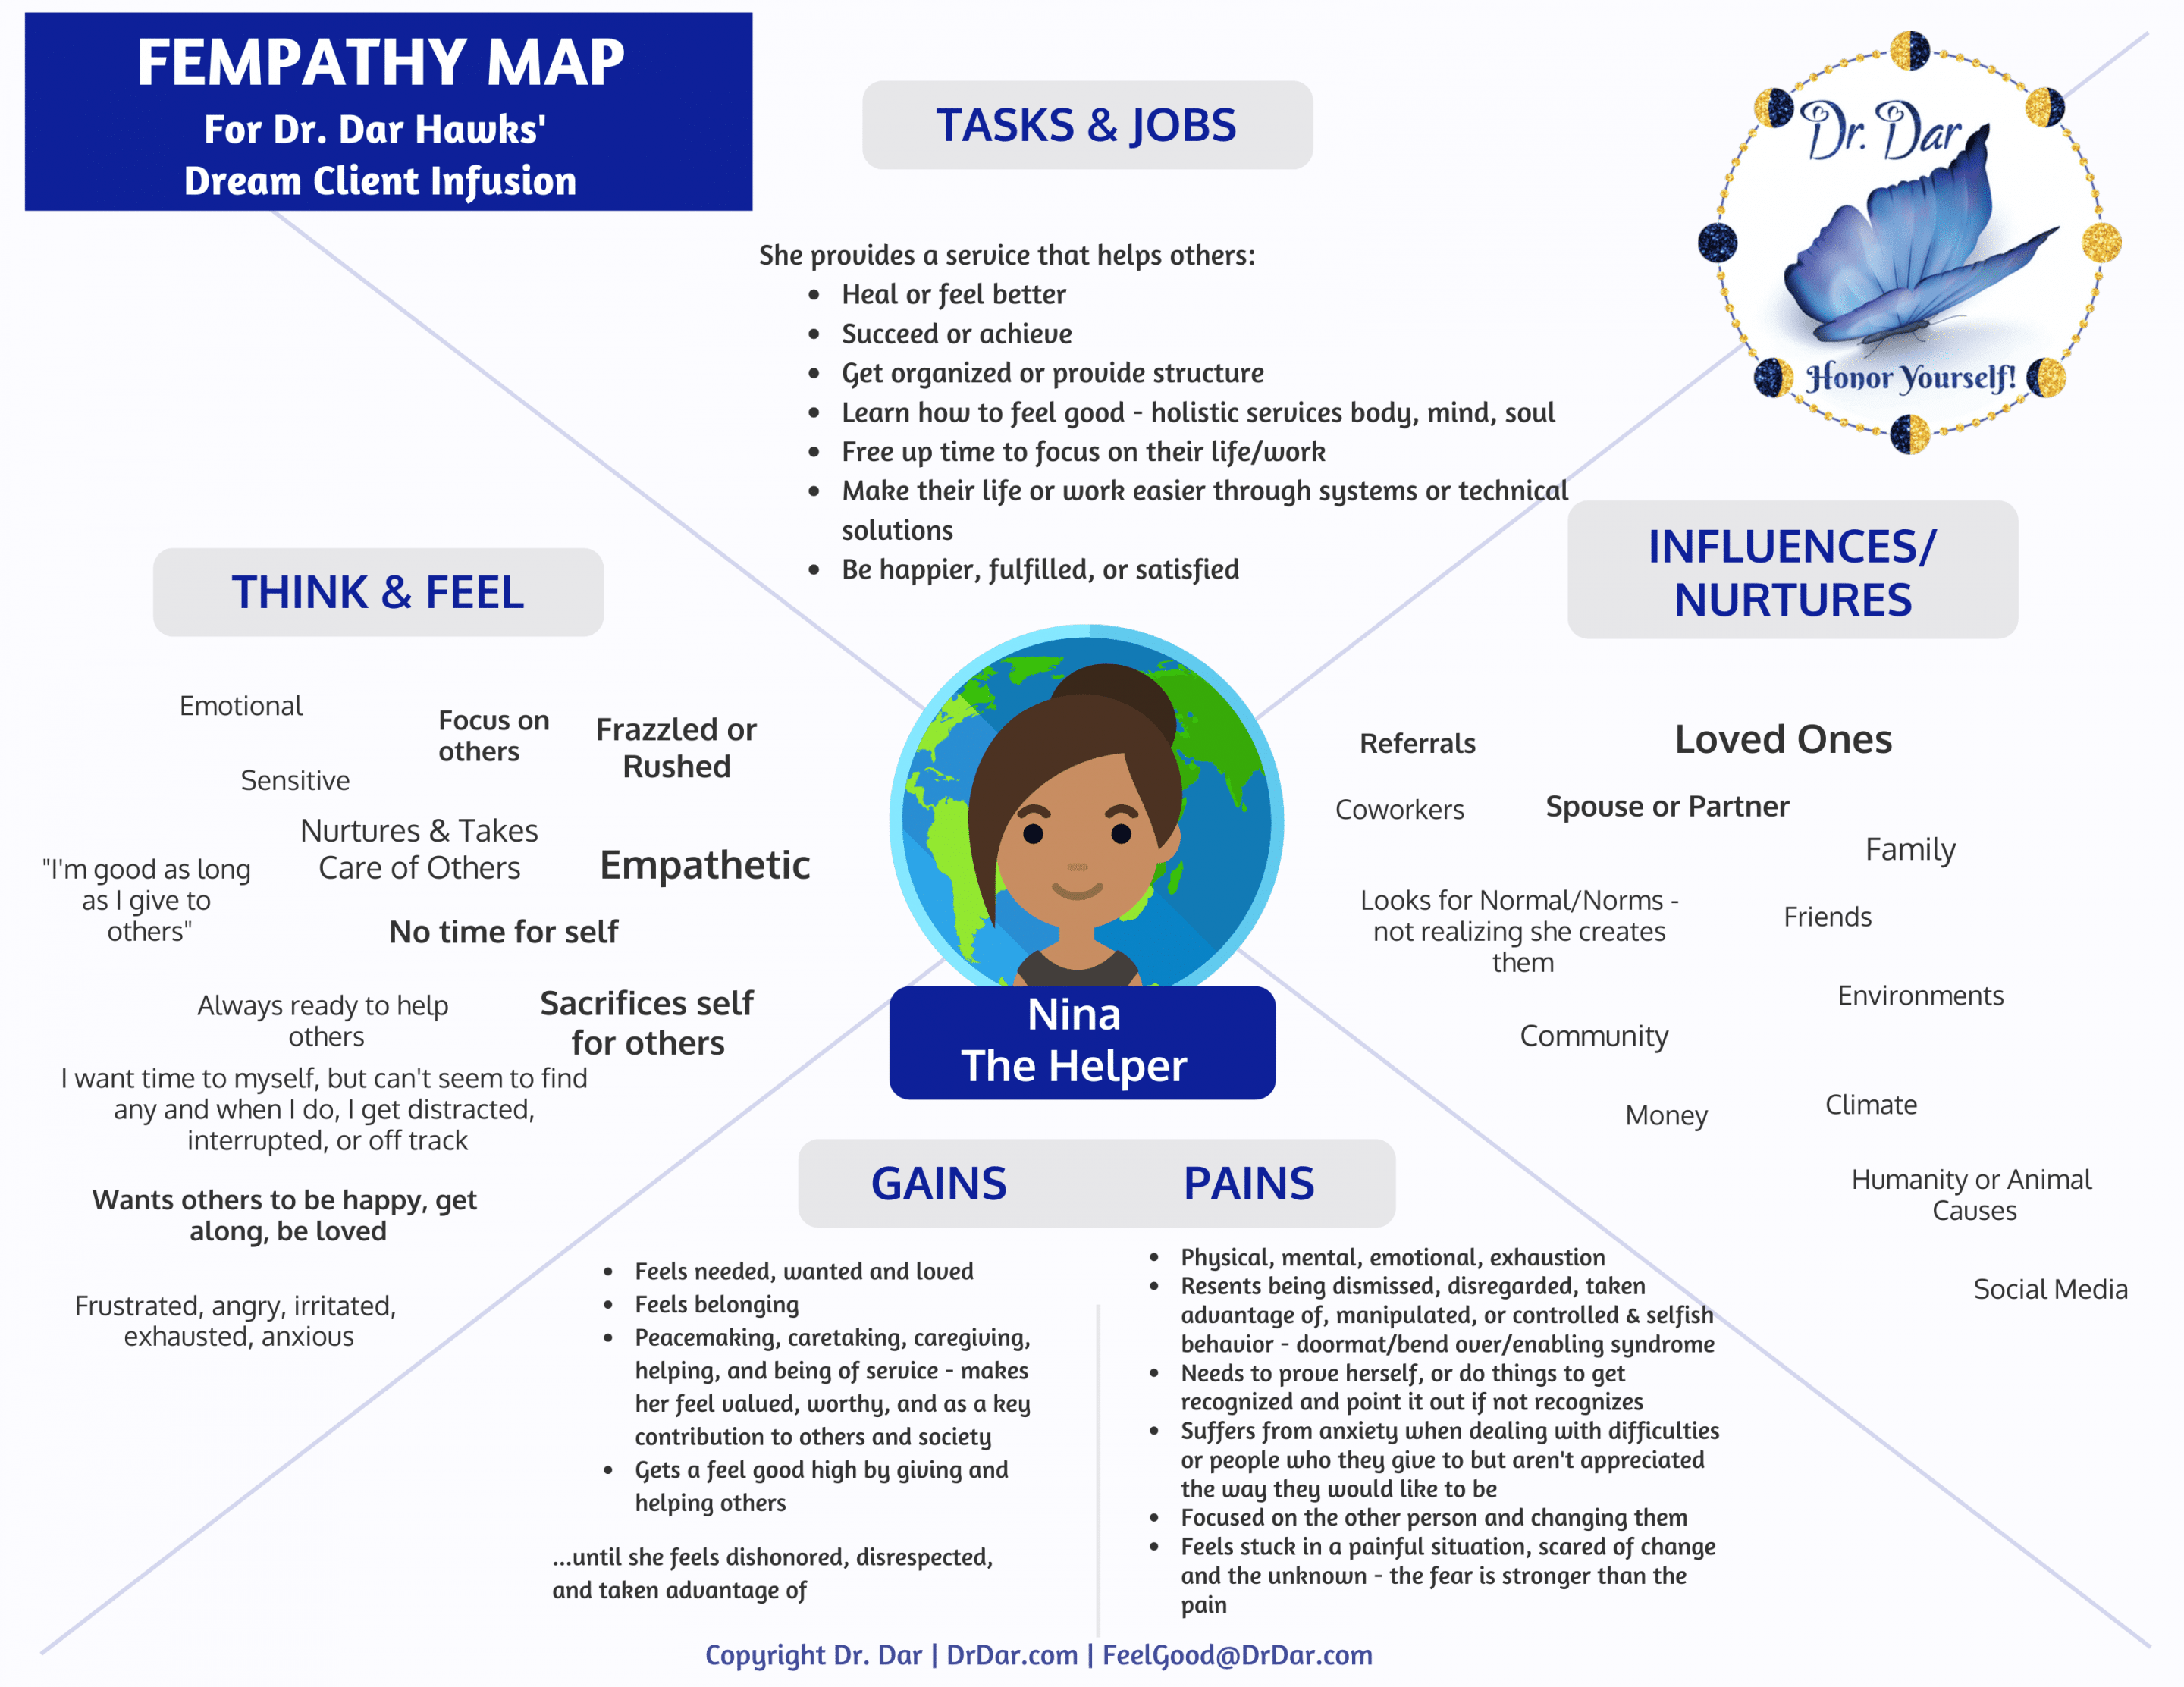 FEMPATHY MAP HD Page 1 - Aligned Dream Client for Dr. Dar Hawks